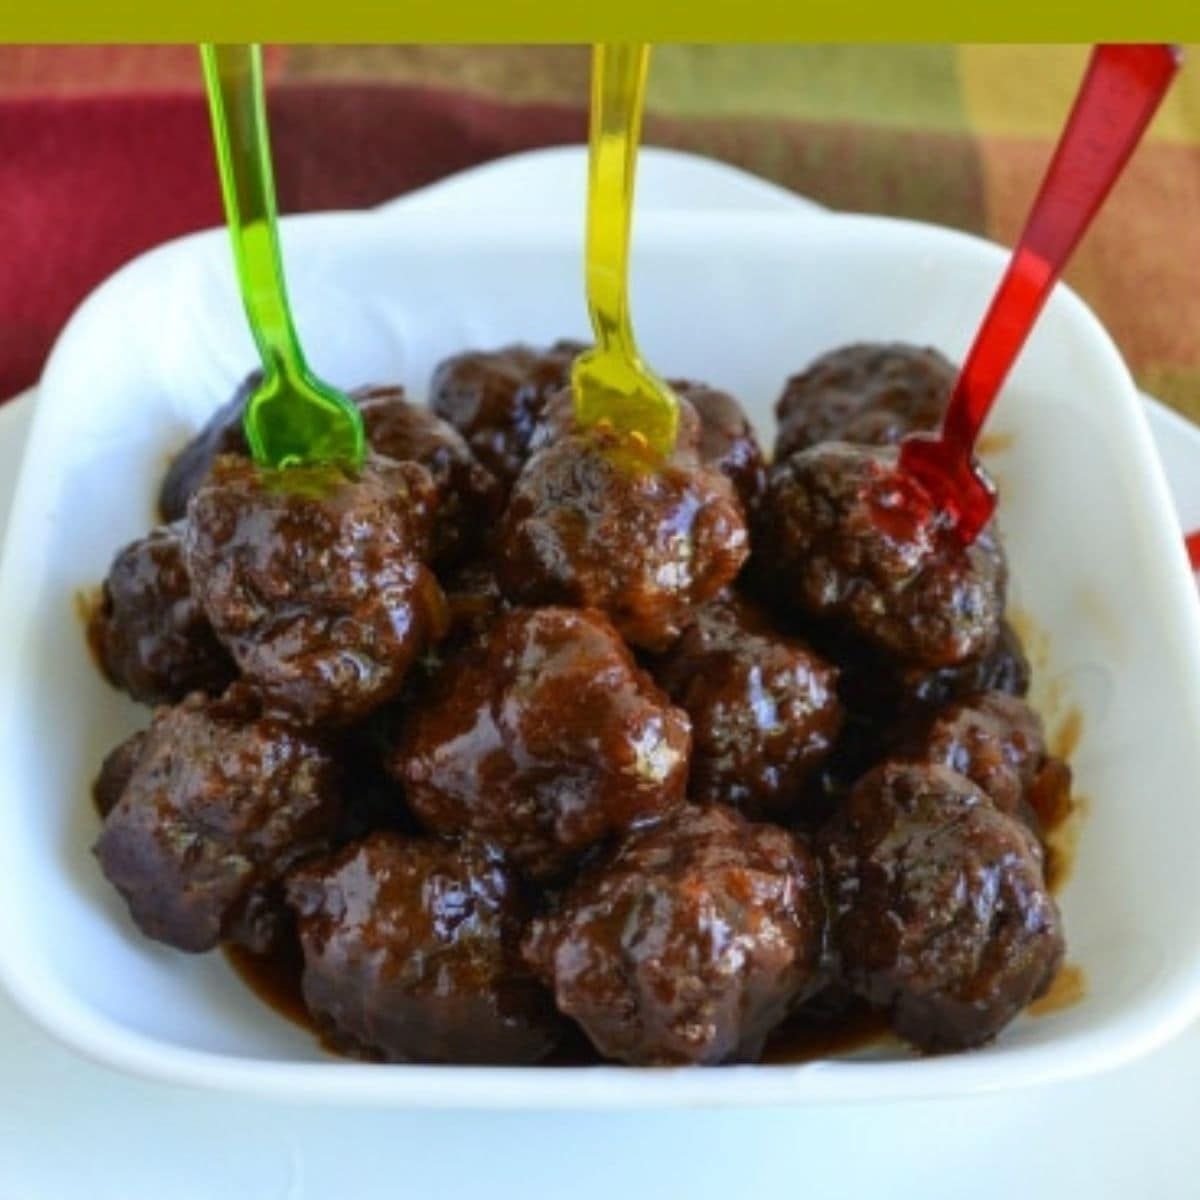 Grape Jelly Meatballs with appetizer forks.